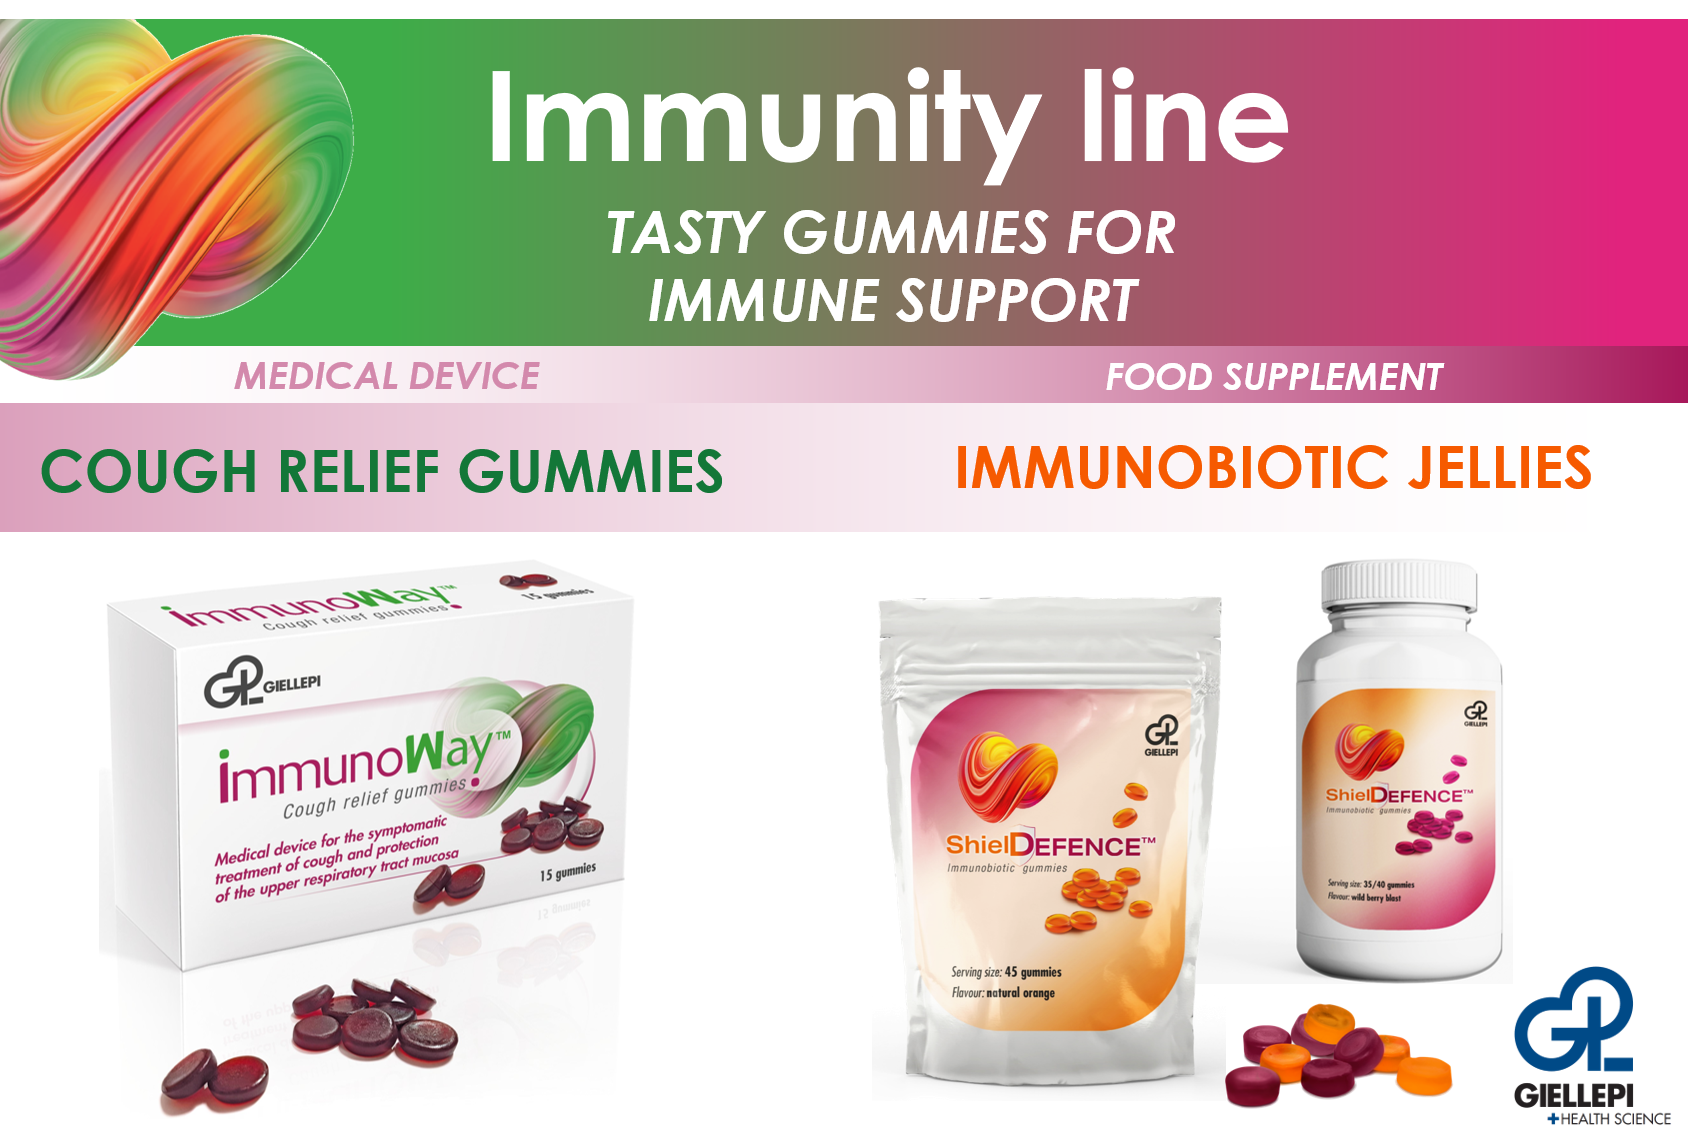 IMMUNE SUPPORT PRODUCTS